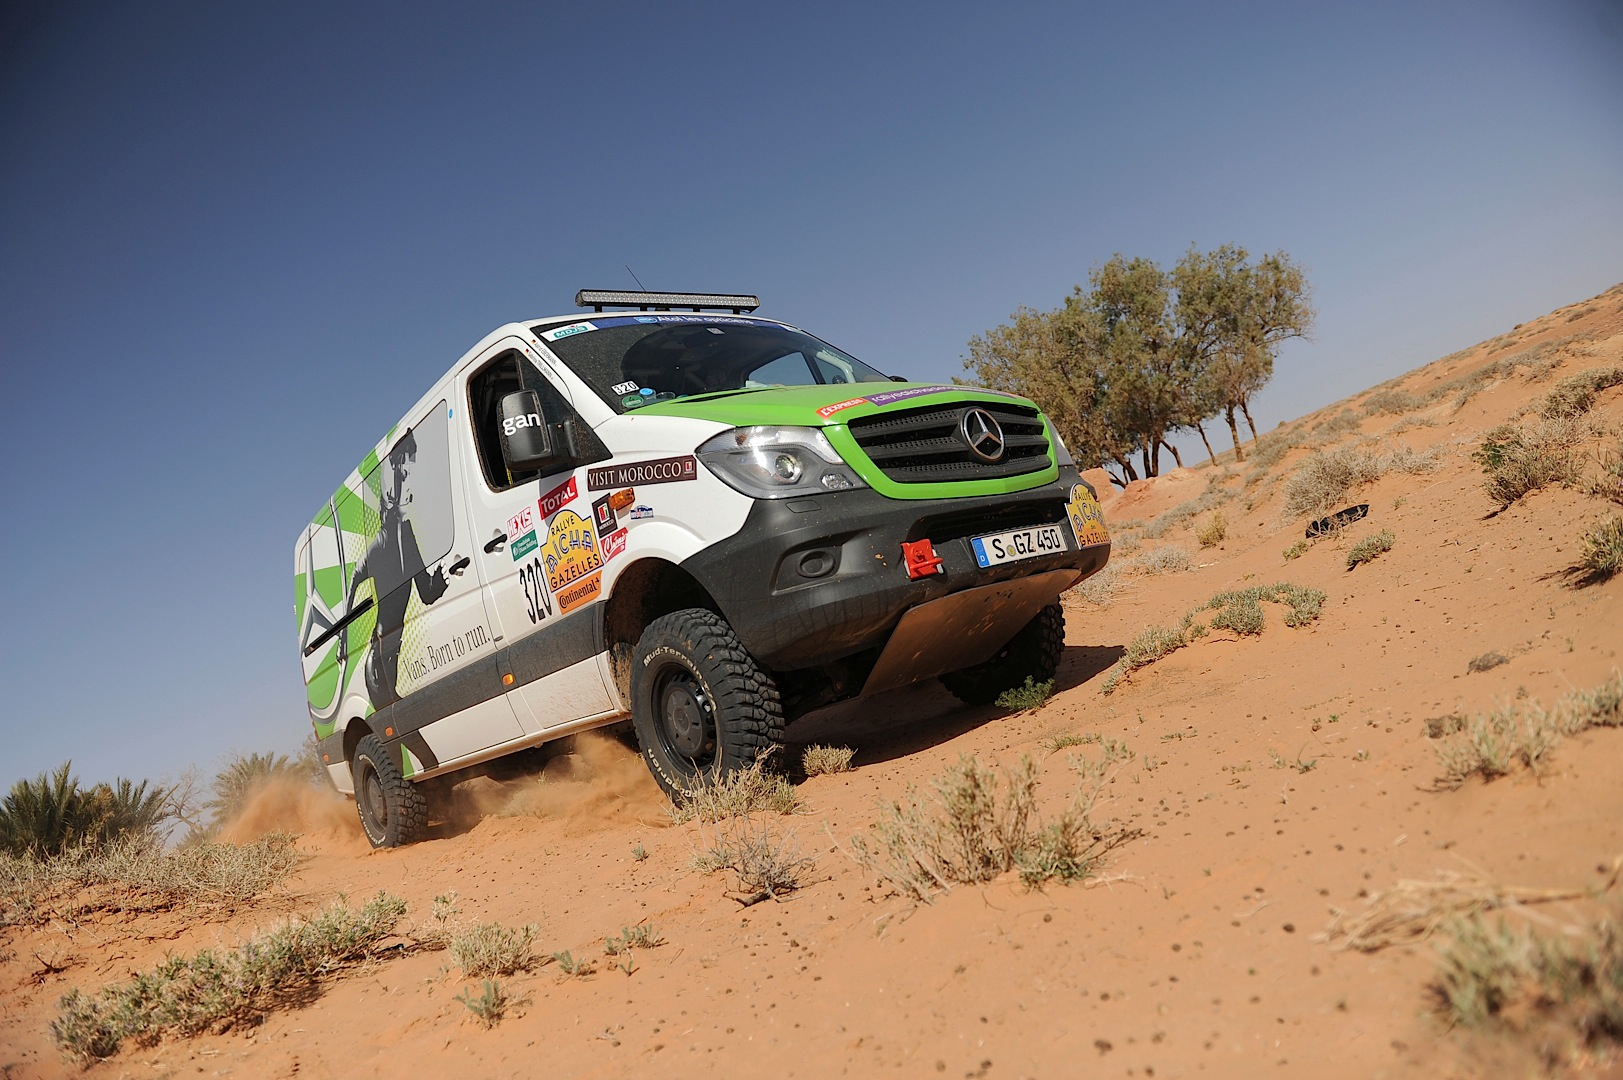 new mercedes benz sprinter 4x4 goes rallying wins autoevolution. Black Bedroom Furniture Sets. Home Design Ideas